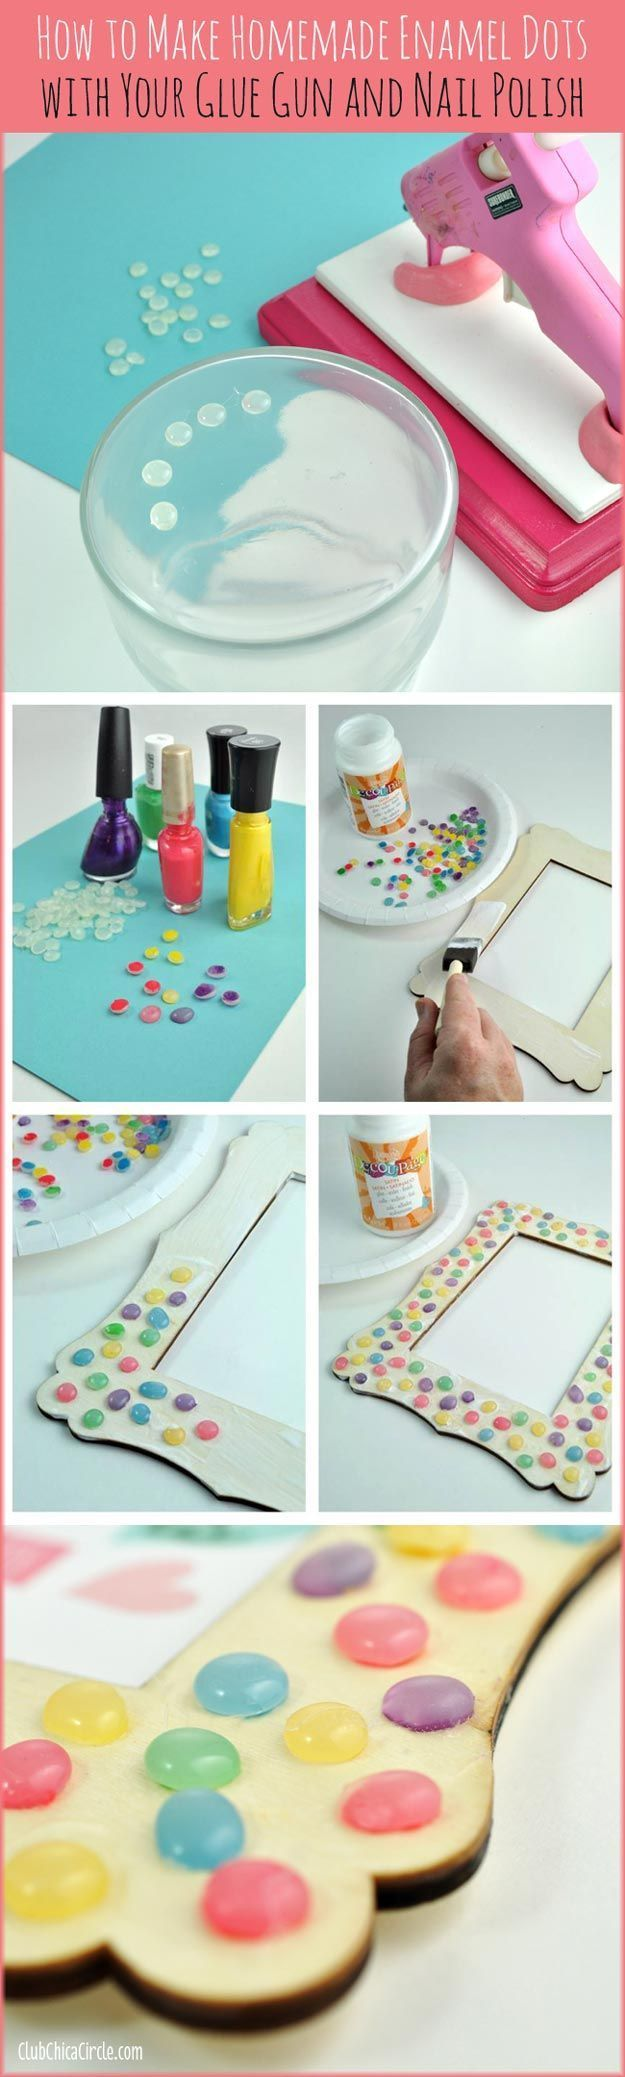 easy and cheap craft ideas 1000 ideas about diy projects for on 6496